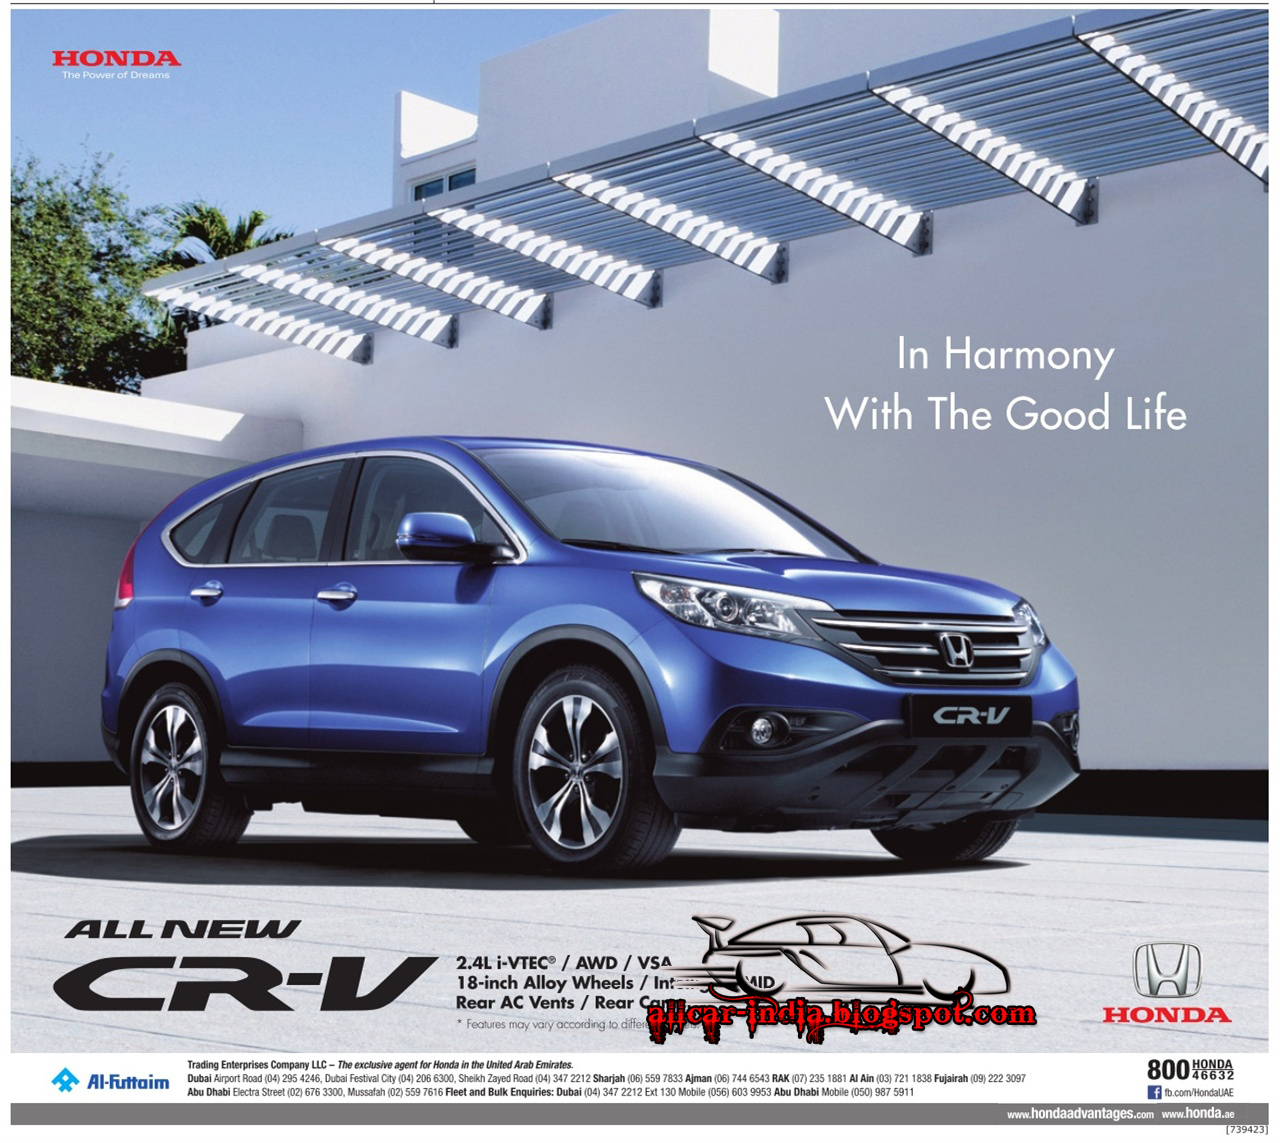 Hondau0027s Premium SUV, The CR V Has Gone Through A Lot Of Change With The  Fourth Generation. On Sale In India Since 2003, Honda Has Managed To Sell  14,000 ...